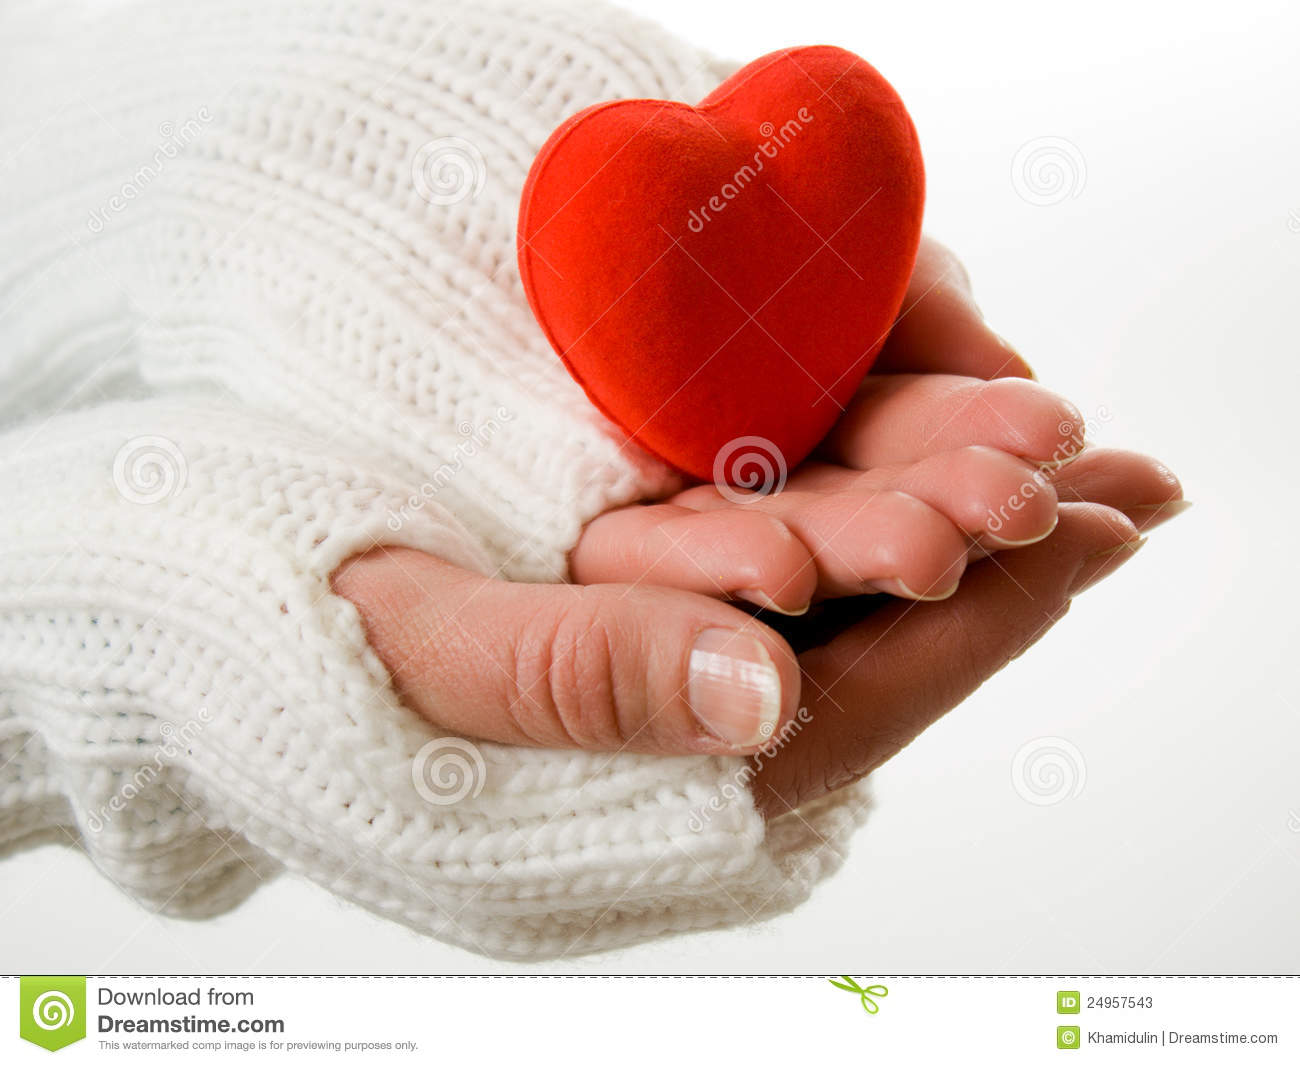 Knitting Pattern For Hand Holding Mittens : Hands In Mittens Holding Heart Stock Photos - Image: 24957543